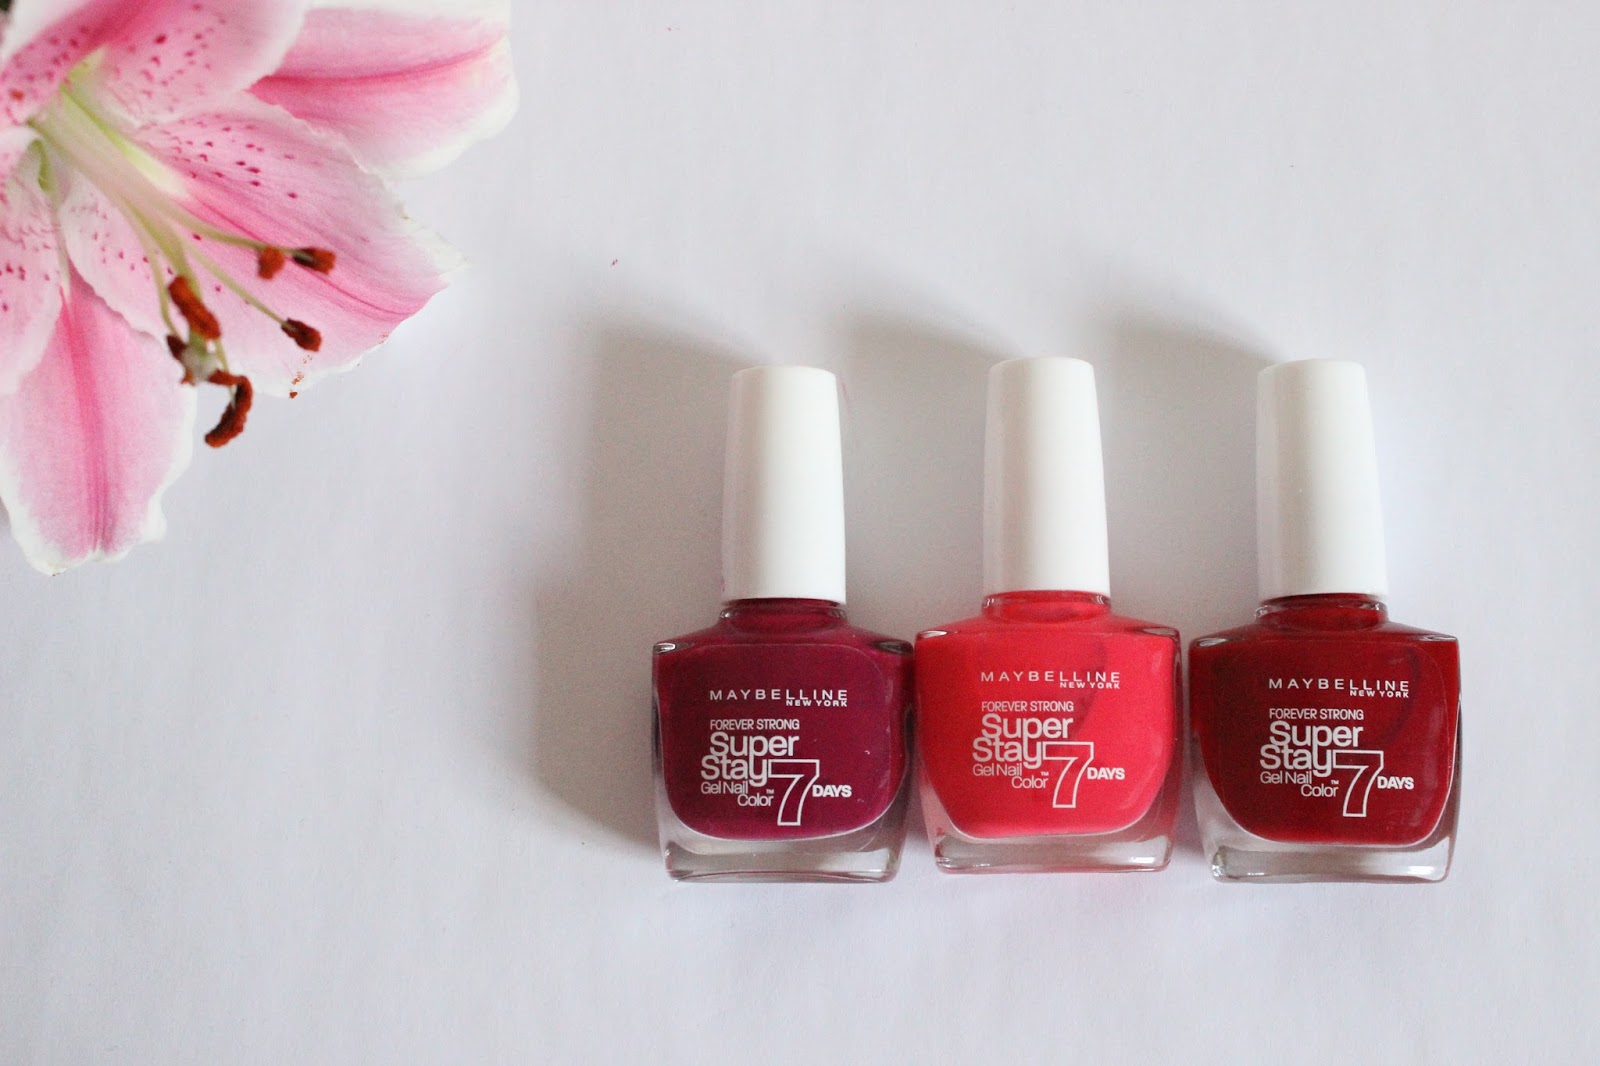 The Long-Lasting Nail Team - A Little Pop of Coral